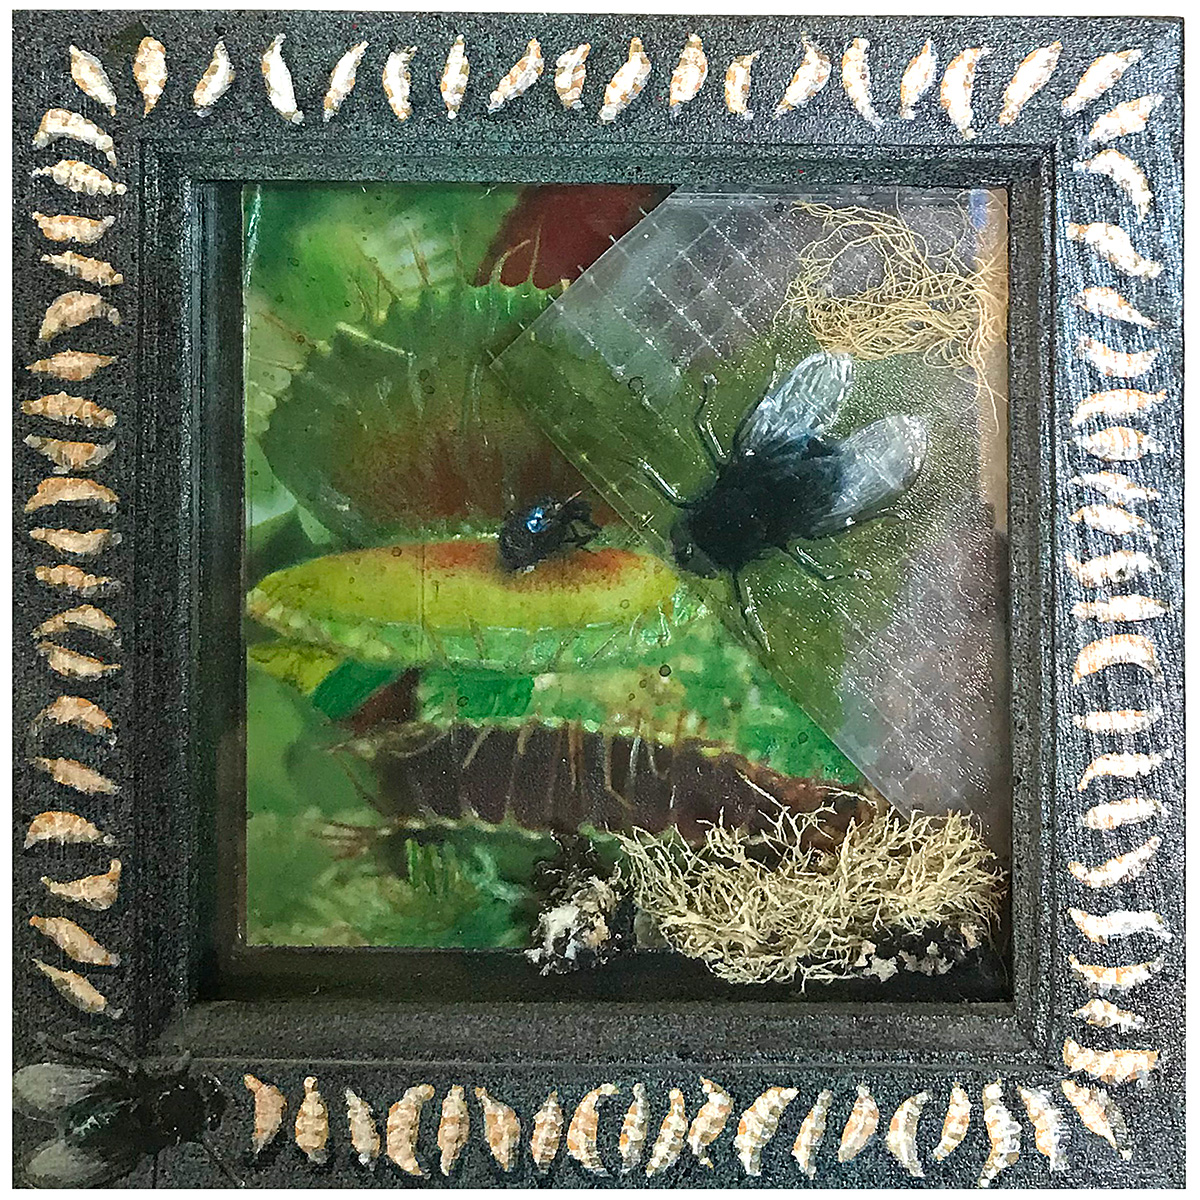 Venus Fly Trap assemblage